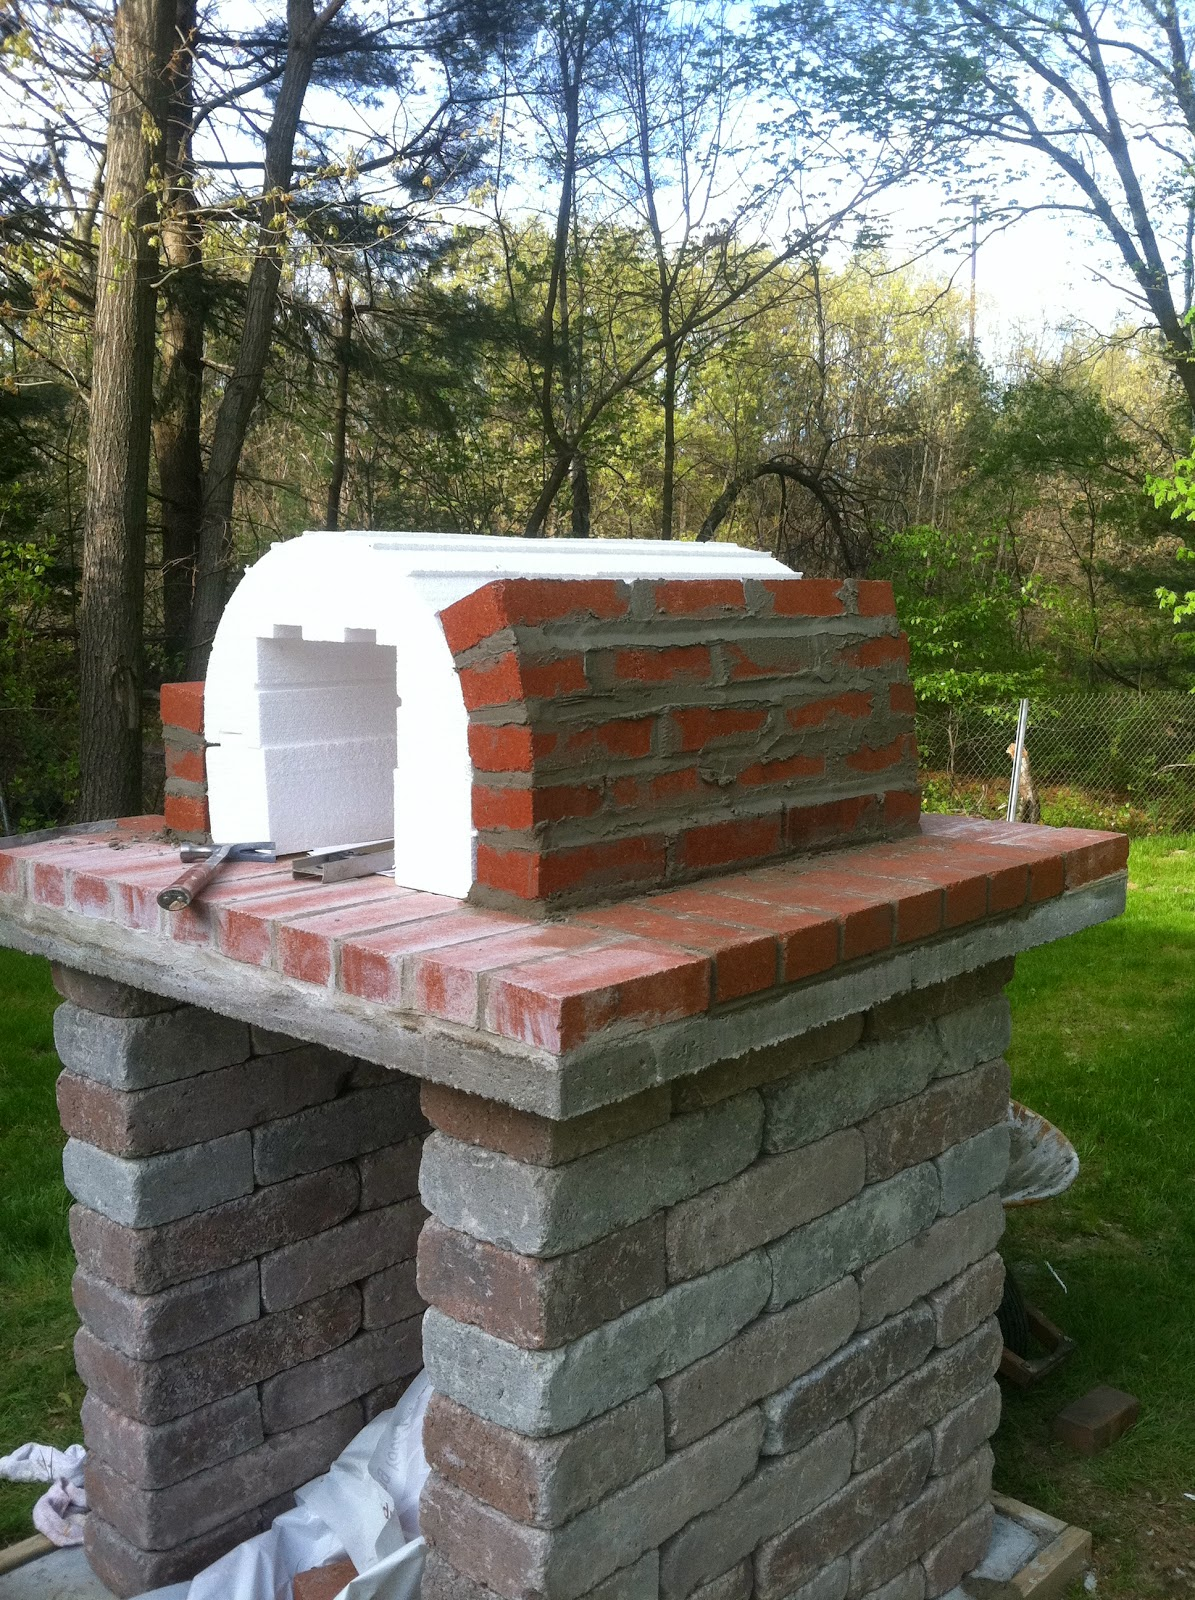 Brick Pizza Oven Base Base With Bricks Arranged In Rough